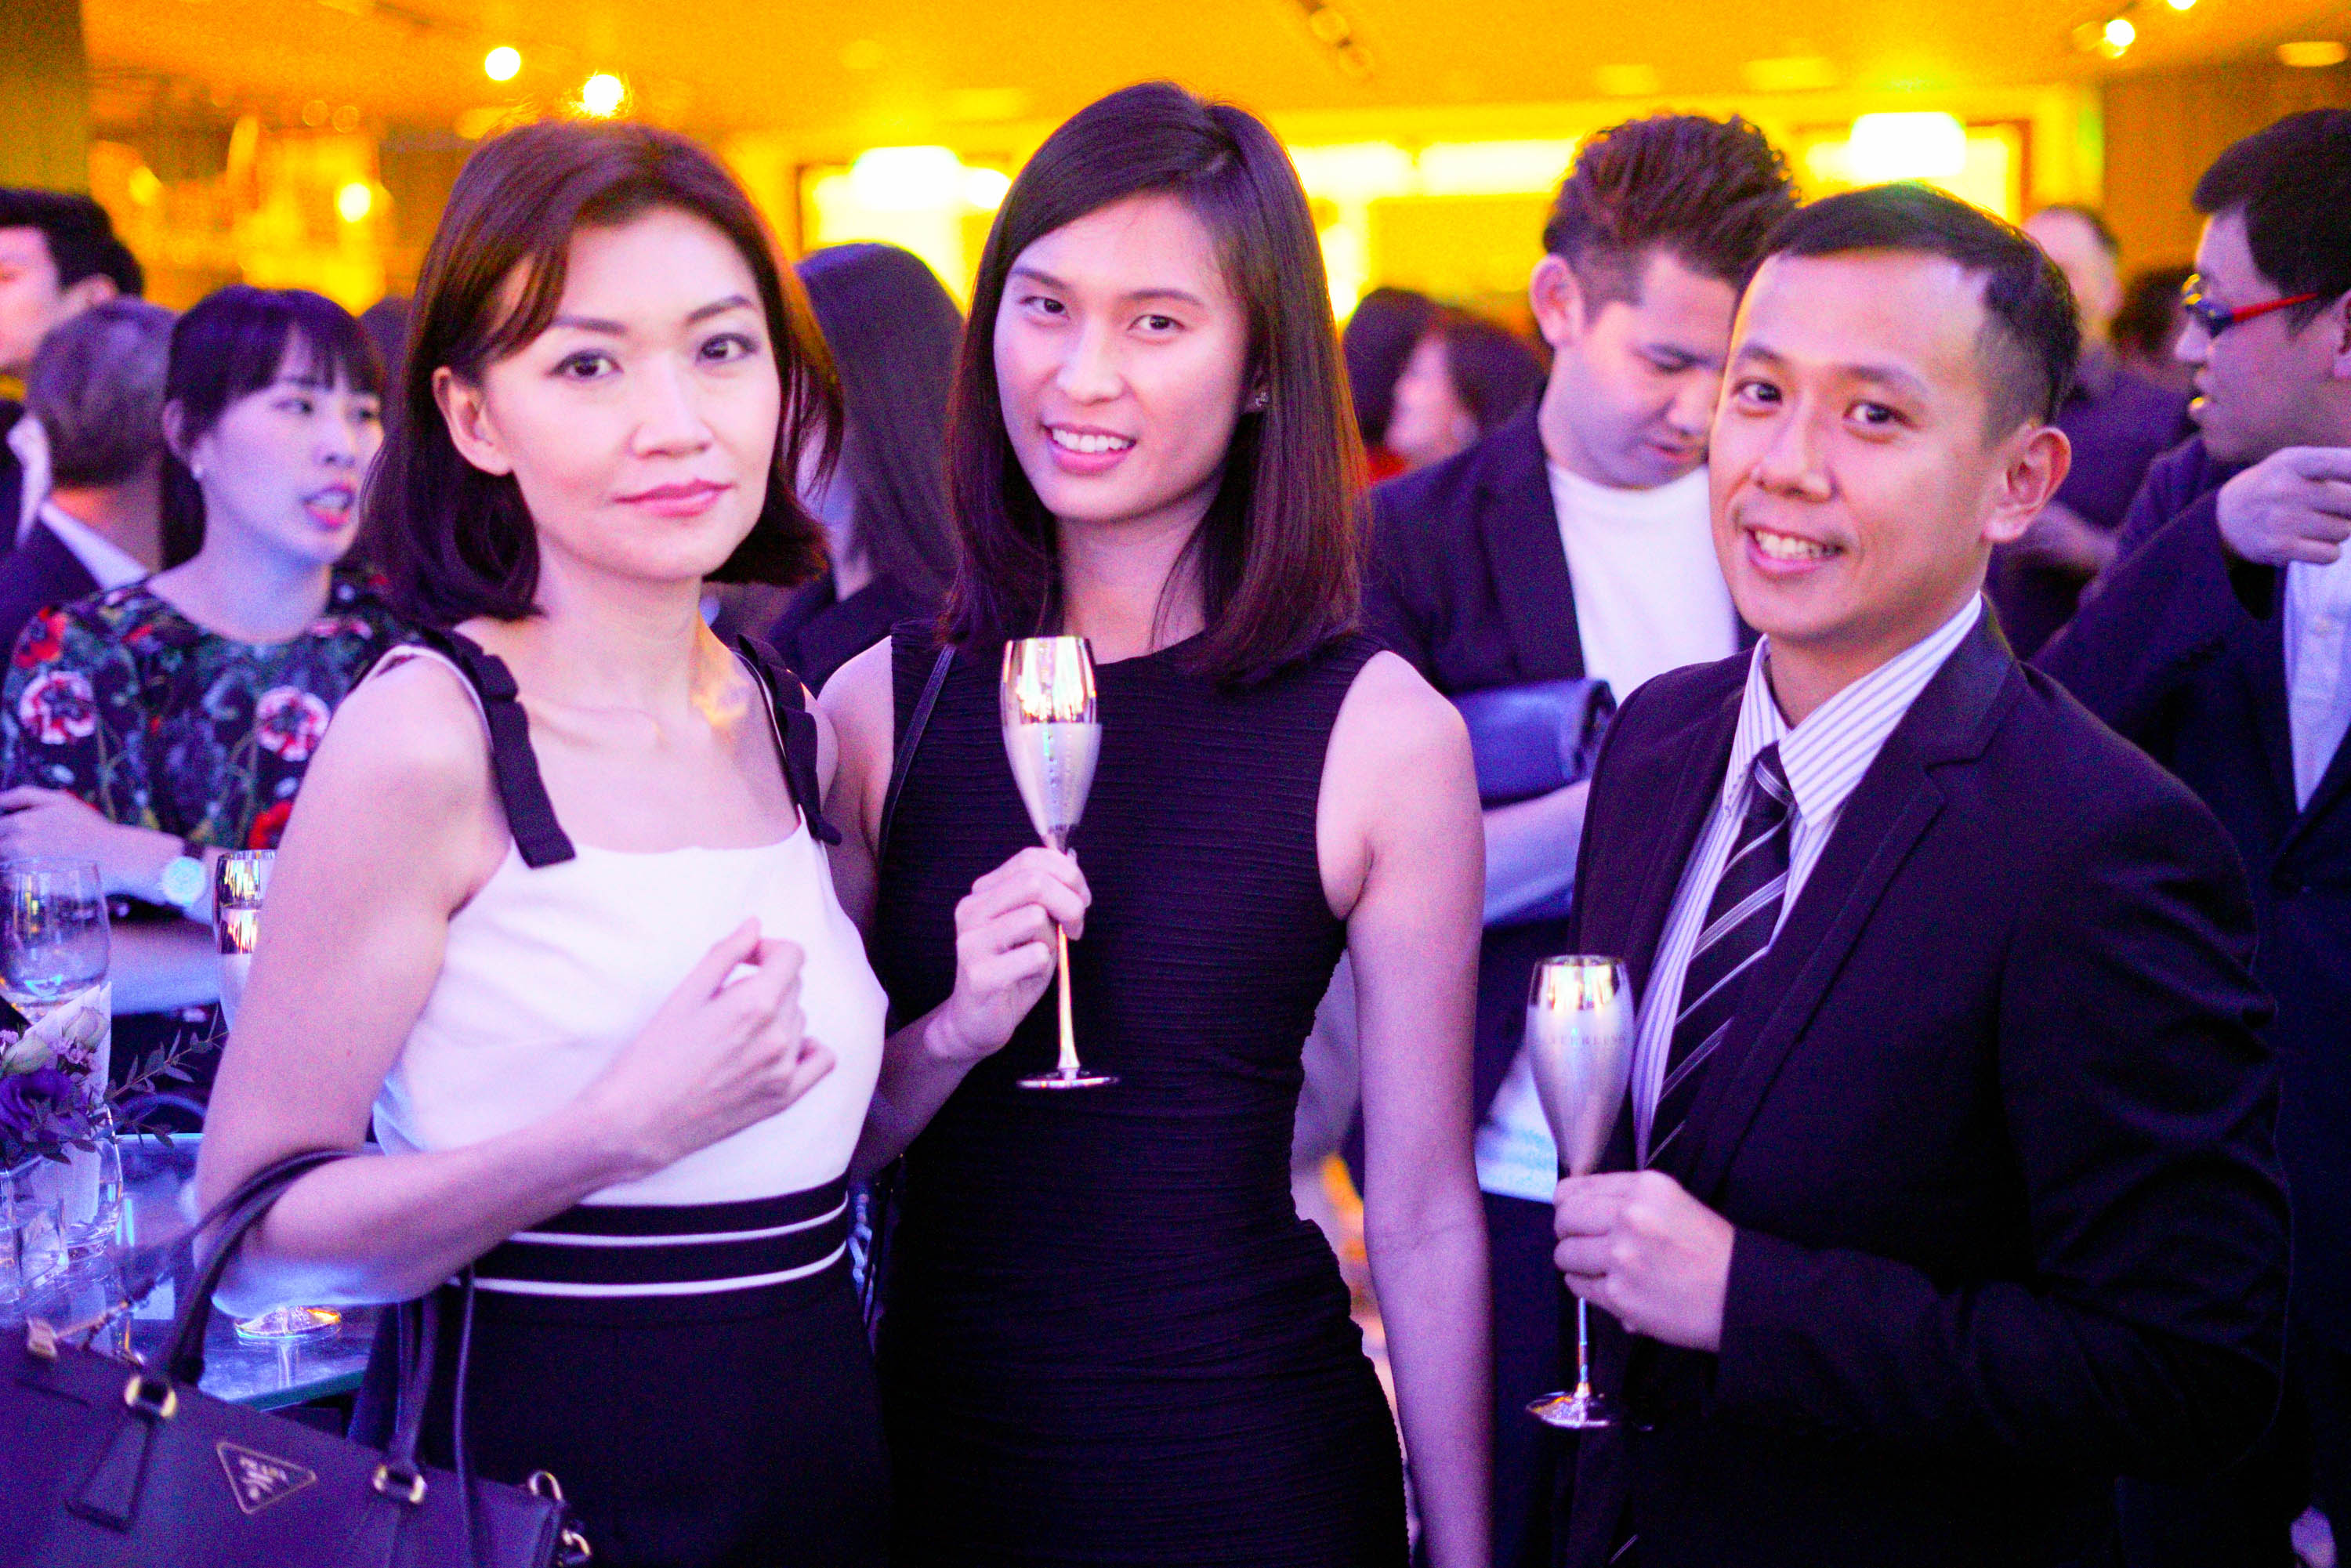 Guests enjoying the sparkling wine in one-of-a-kind silver flutes